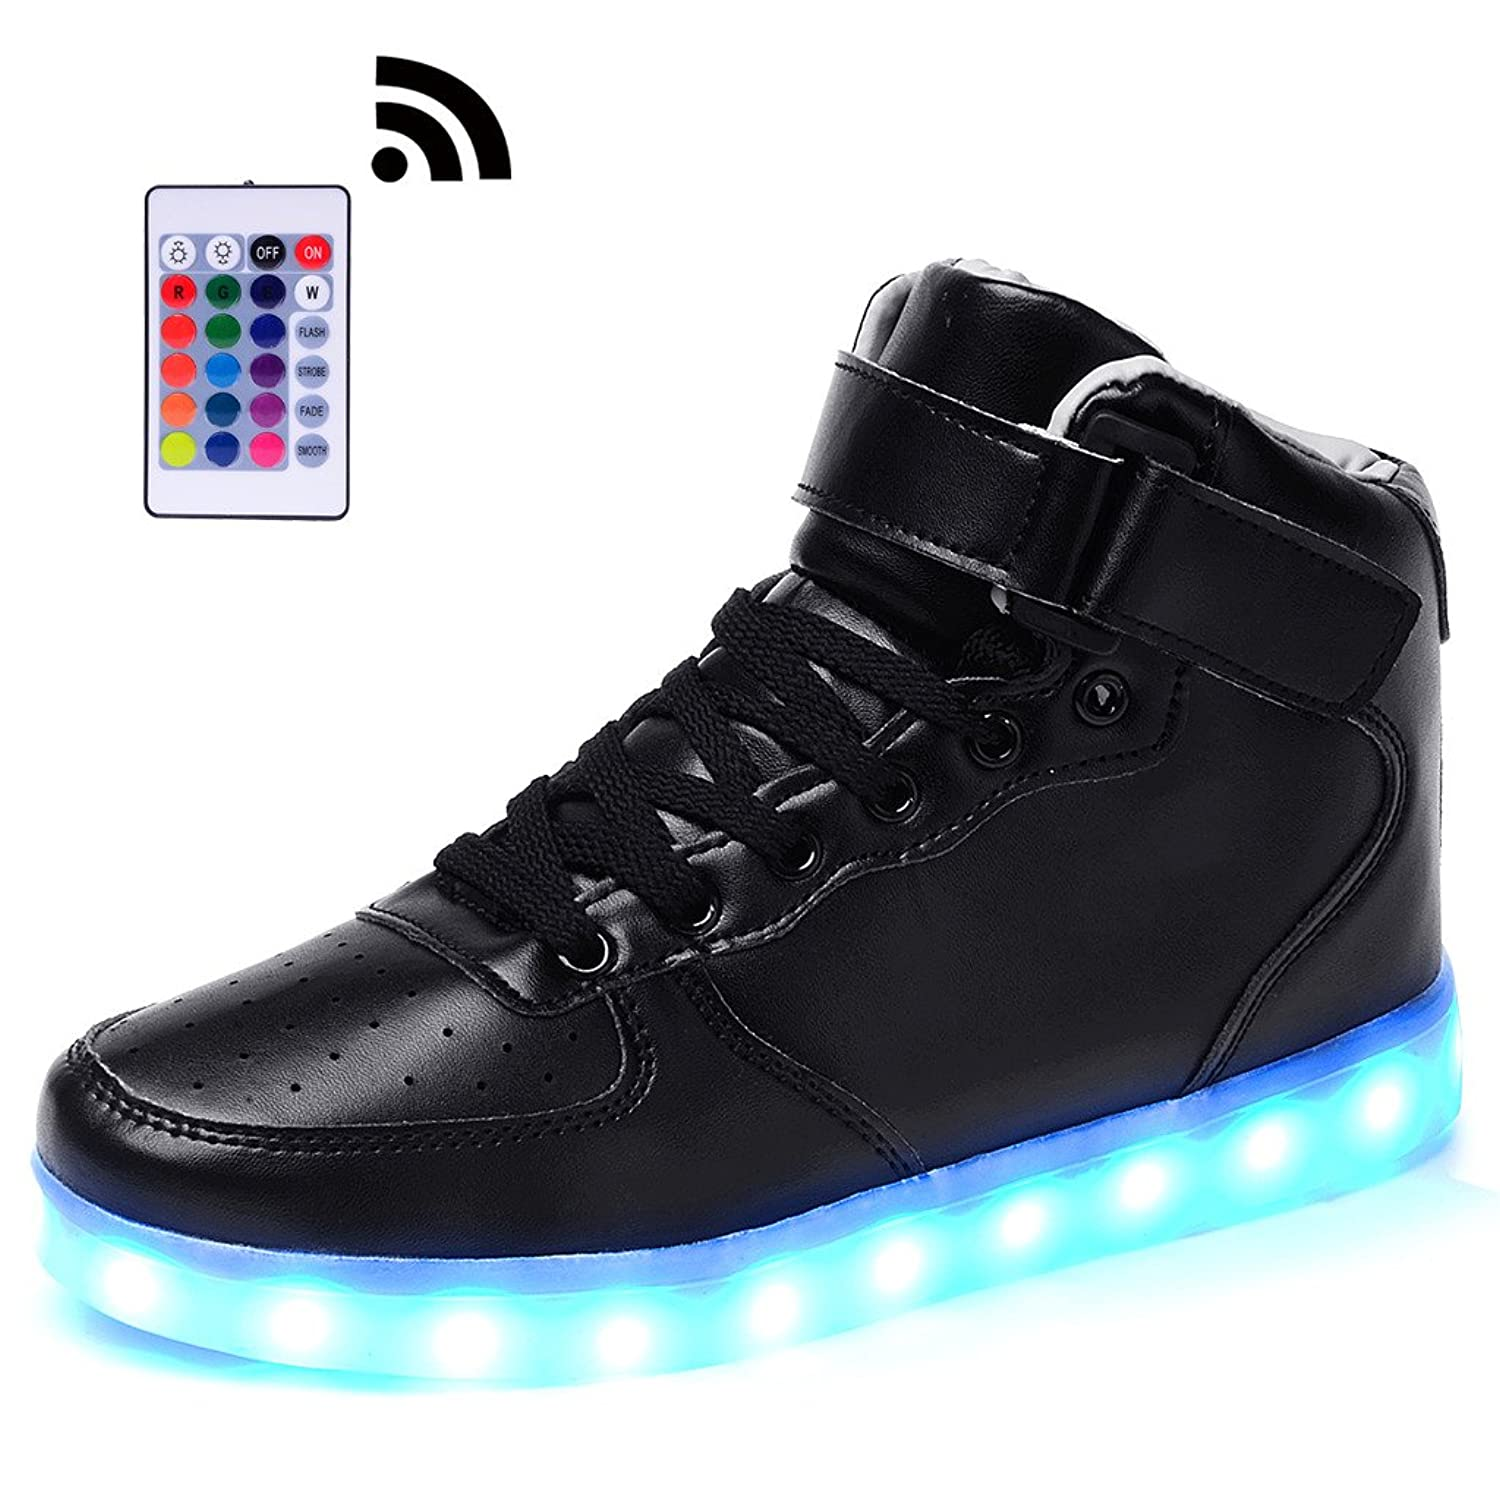 Odema Unisex High Top LED Light Up Shoes Flashing Sneakers Mens Womens Girls Boys